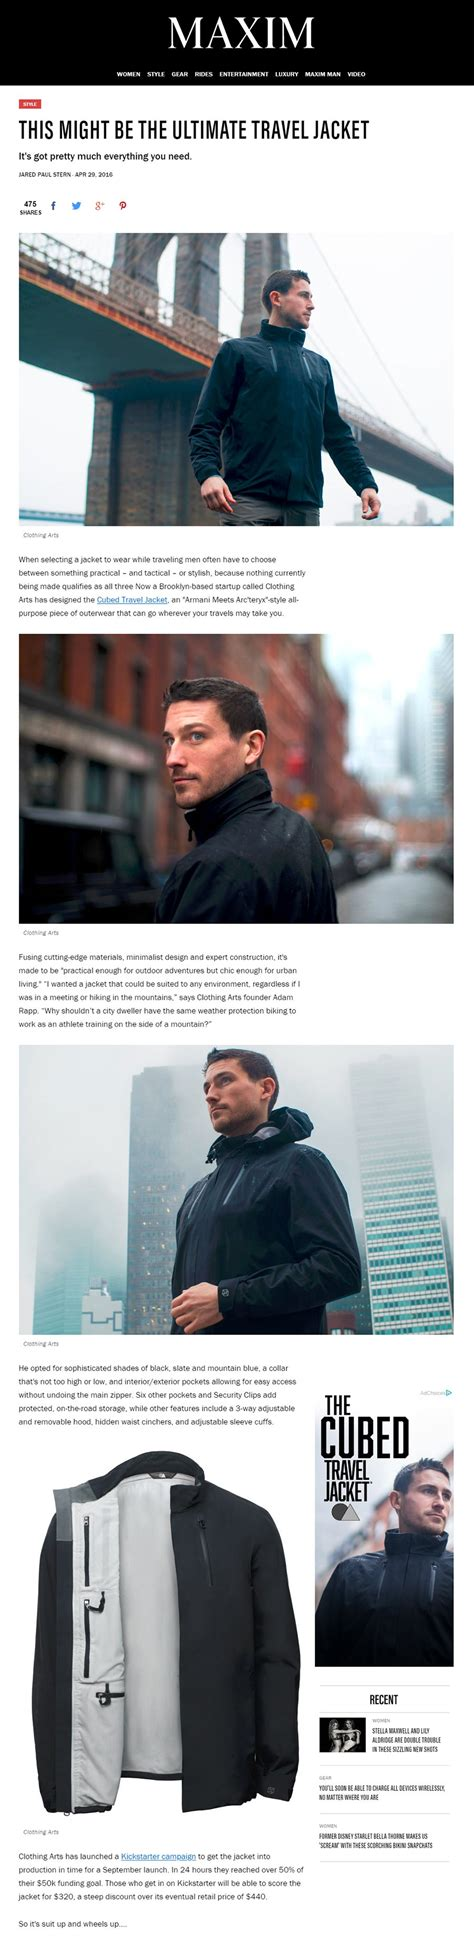 expert design and construction reviews the cubed travel jacket a waterproof shell for everyday